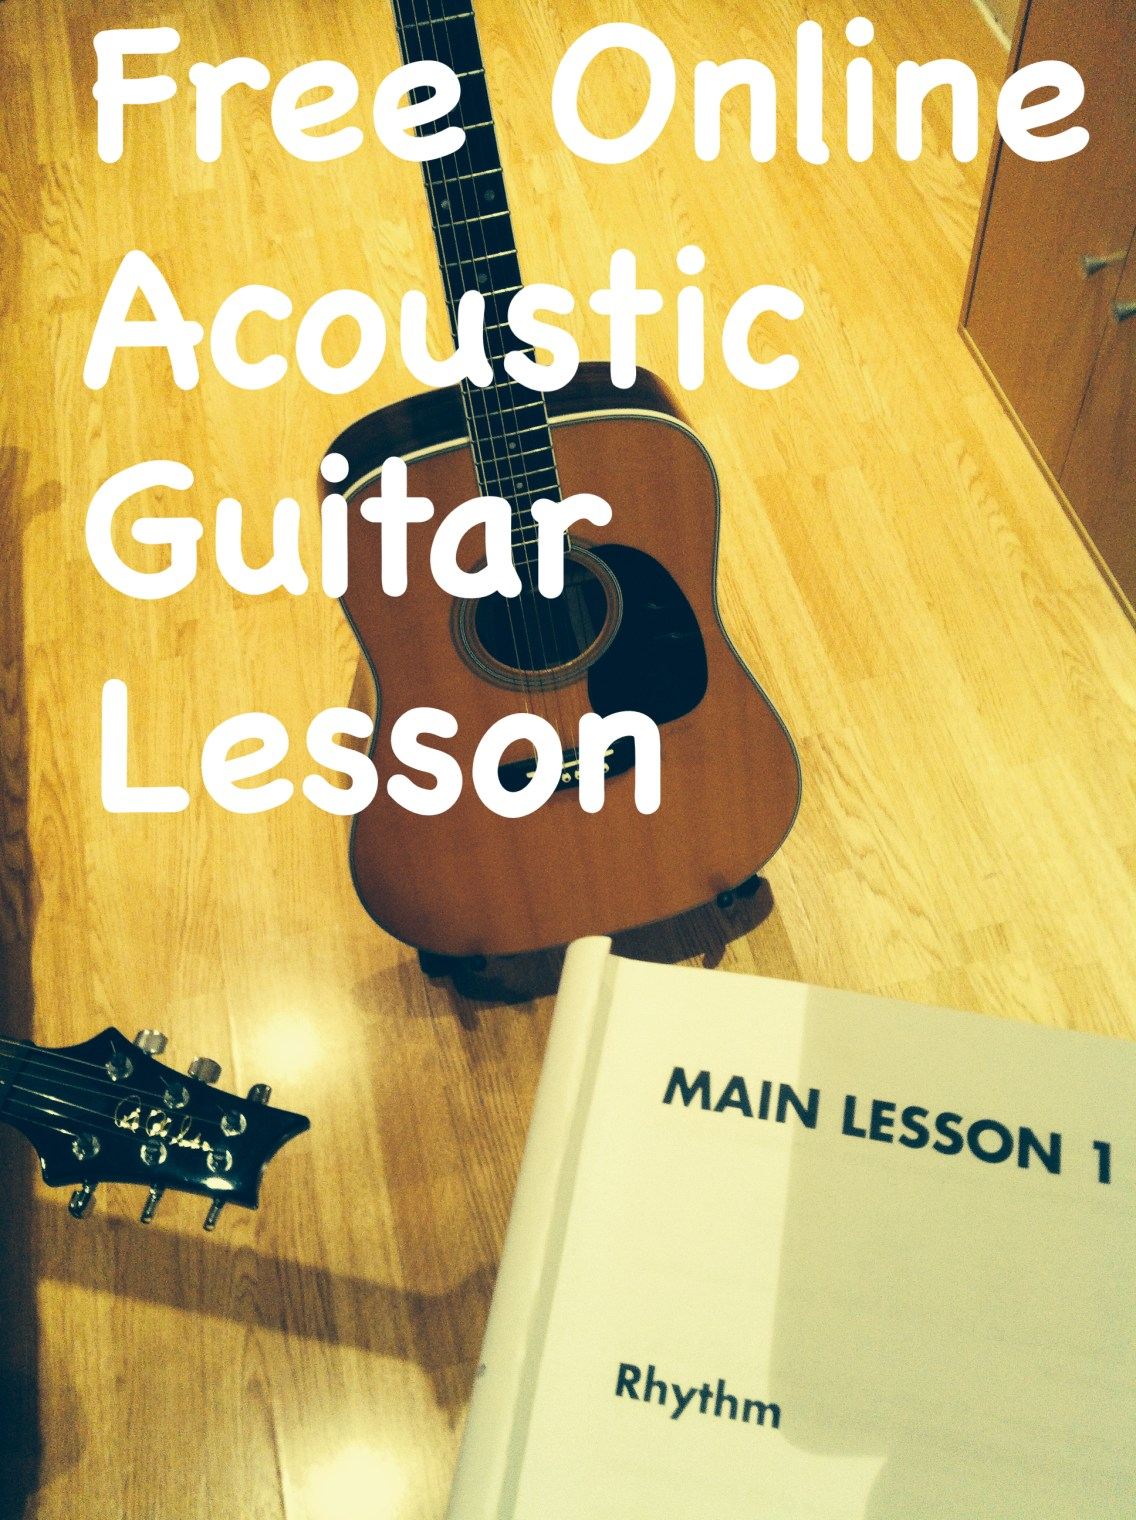 E major and E sus 4 Diagram -Free Online Guitar Lesson - Learn How to Play E major and E sus 4 Chord - Learn Guitar in London